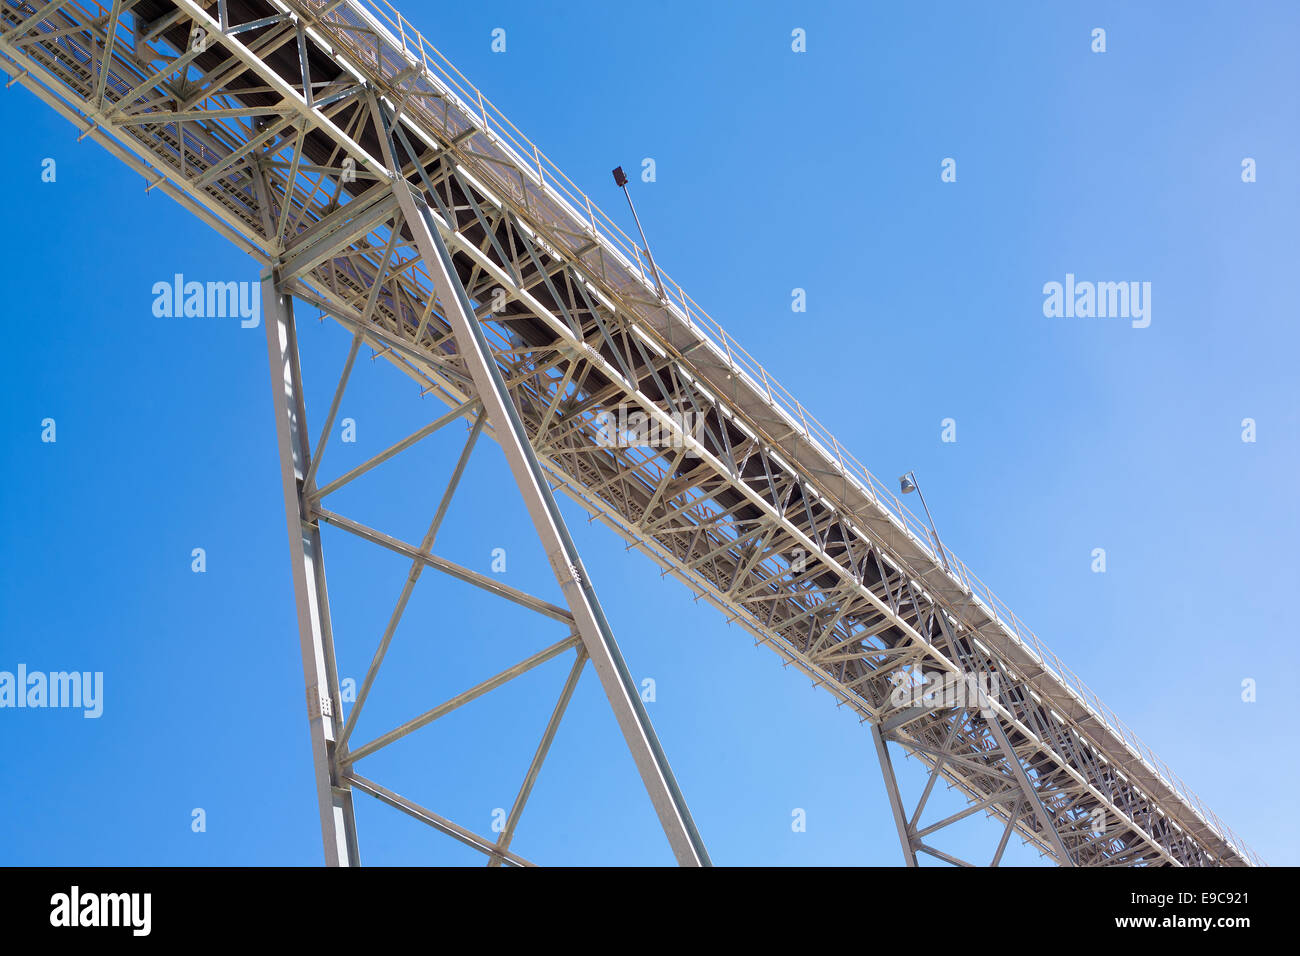 Conveyor belt at an open pit copper mine - Stock Image